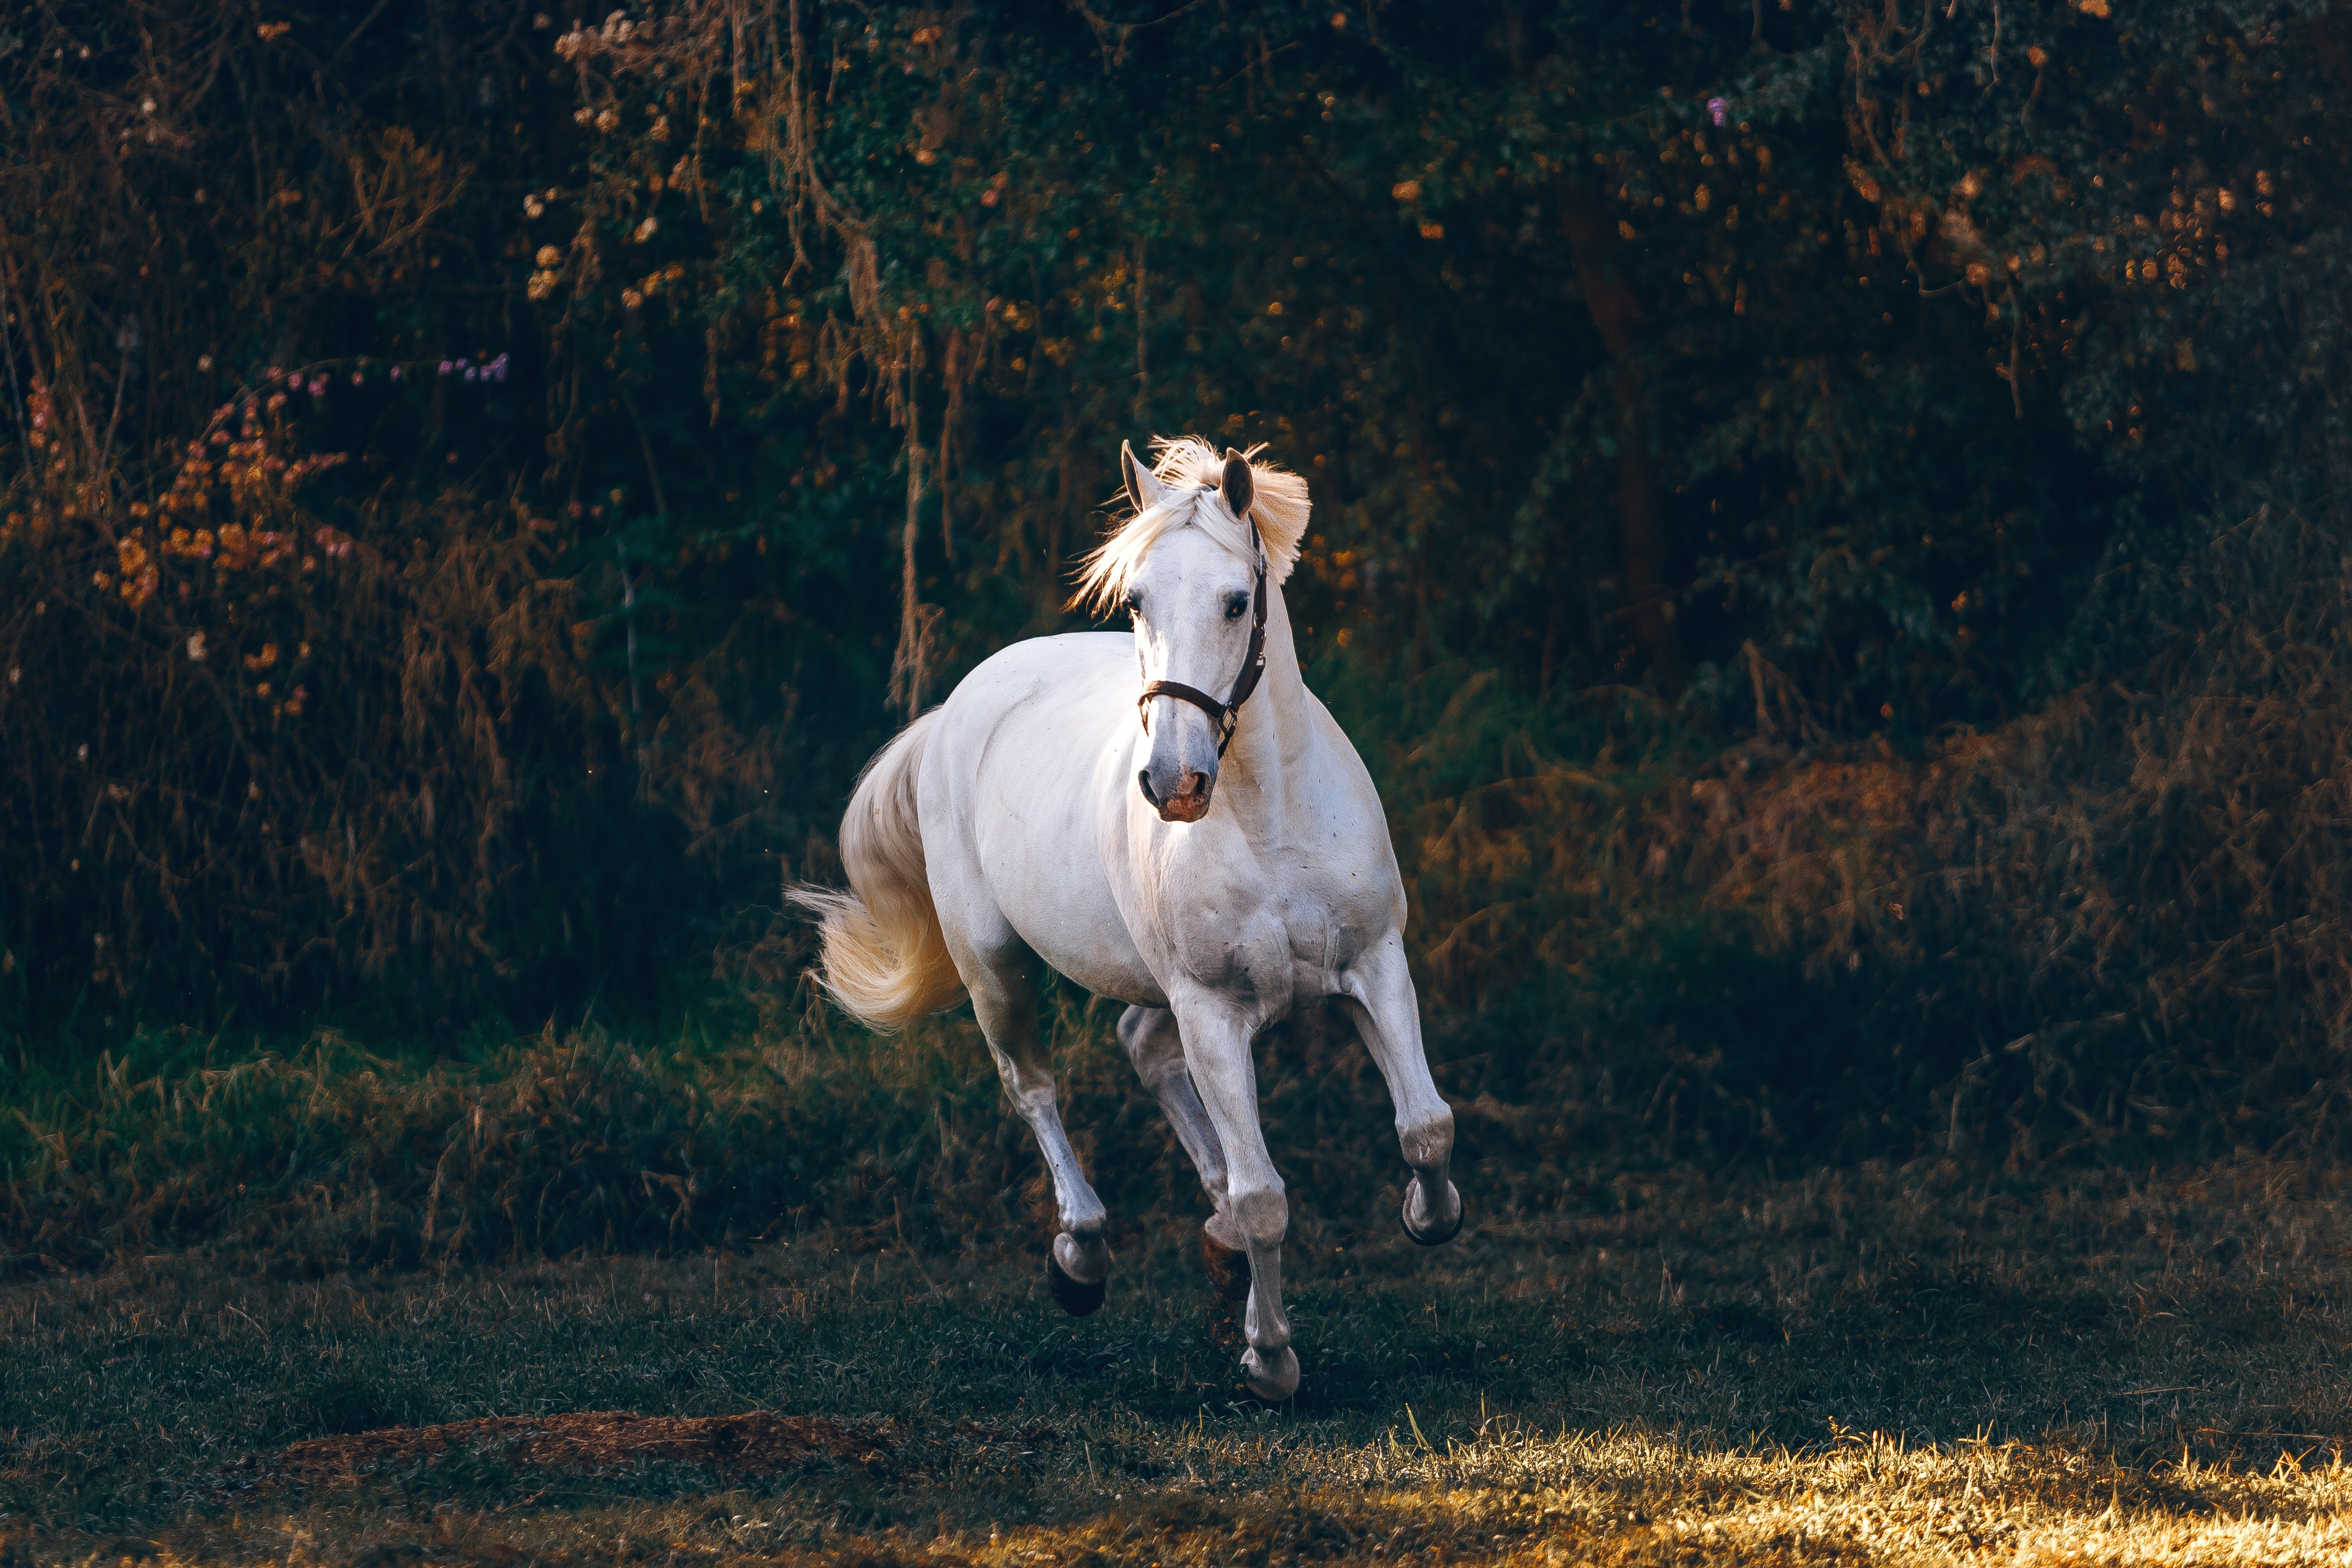 White Horse Running On Green Field Free Stock Photo